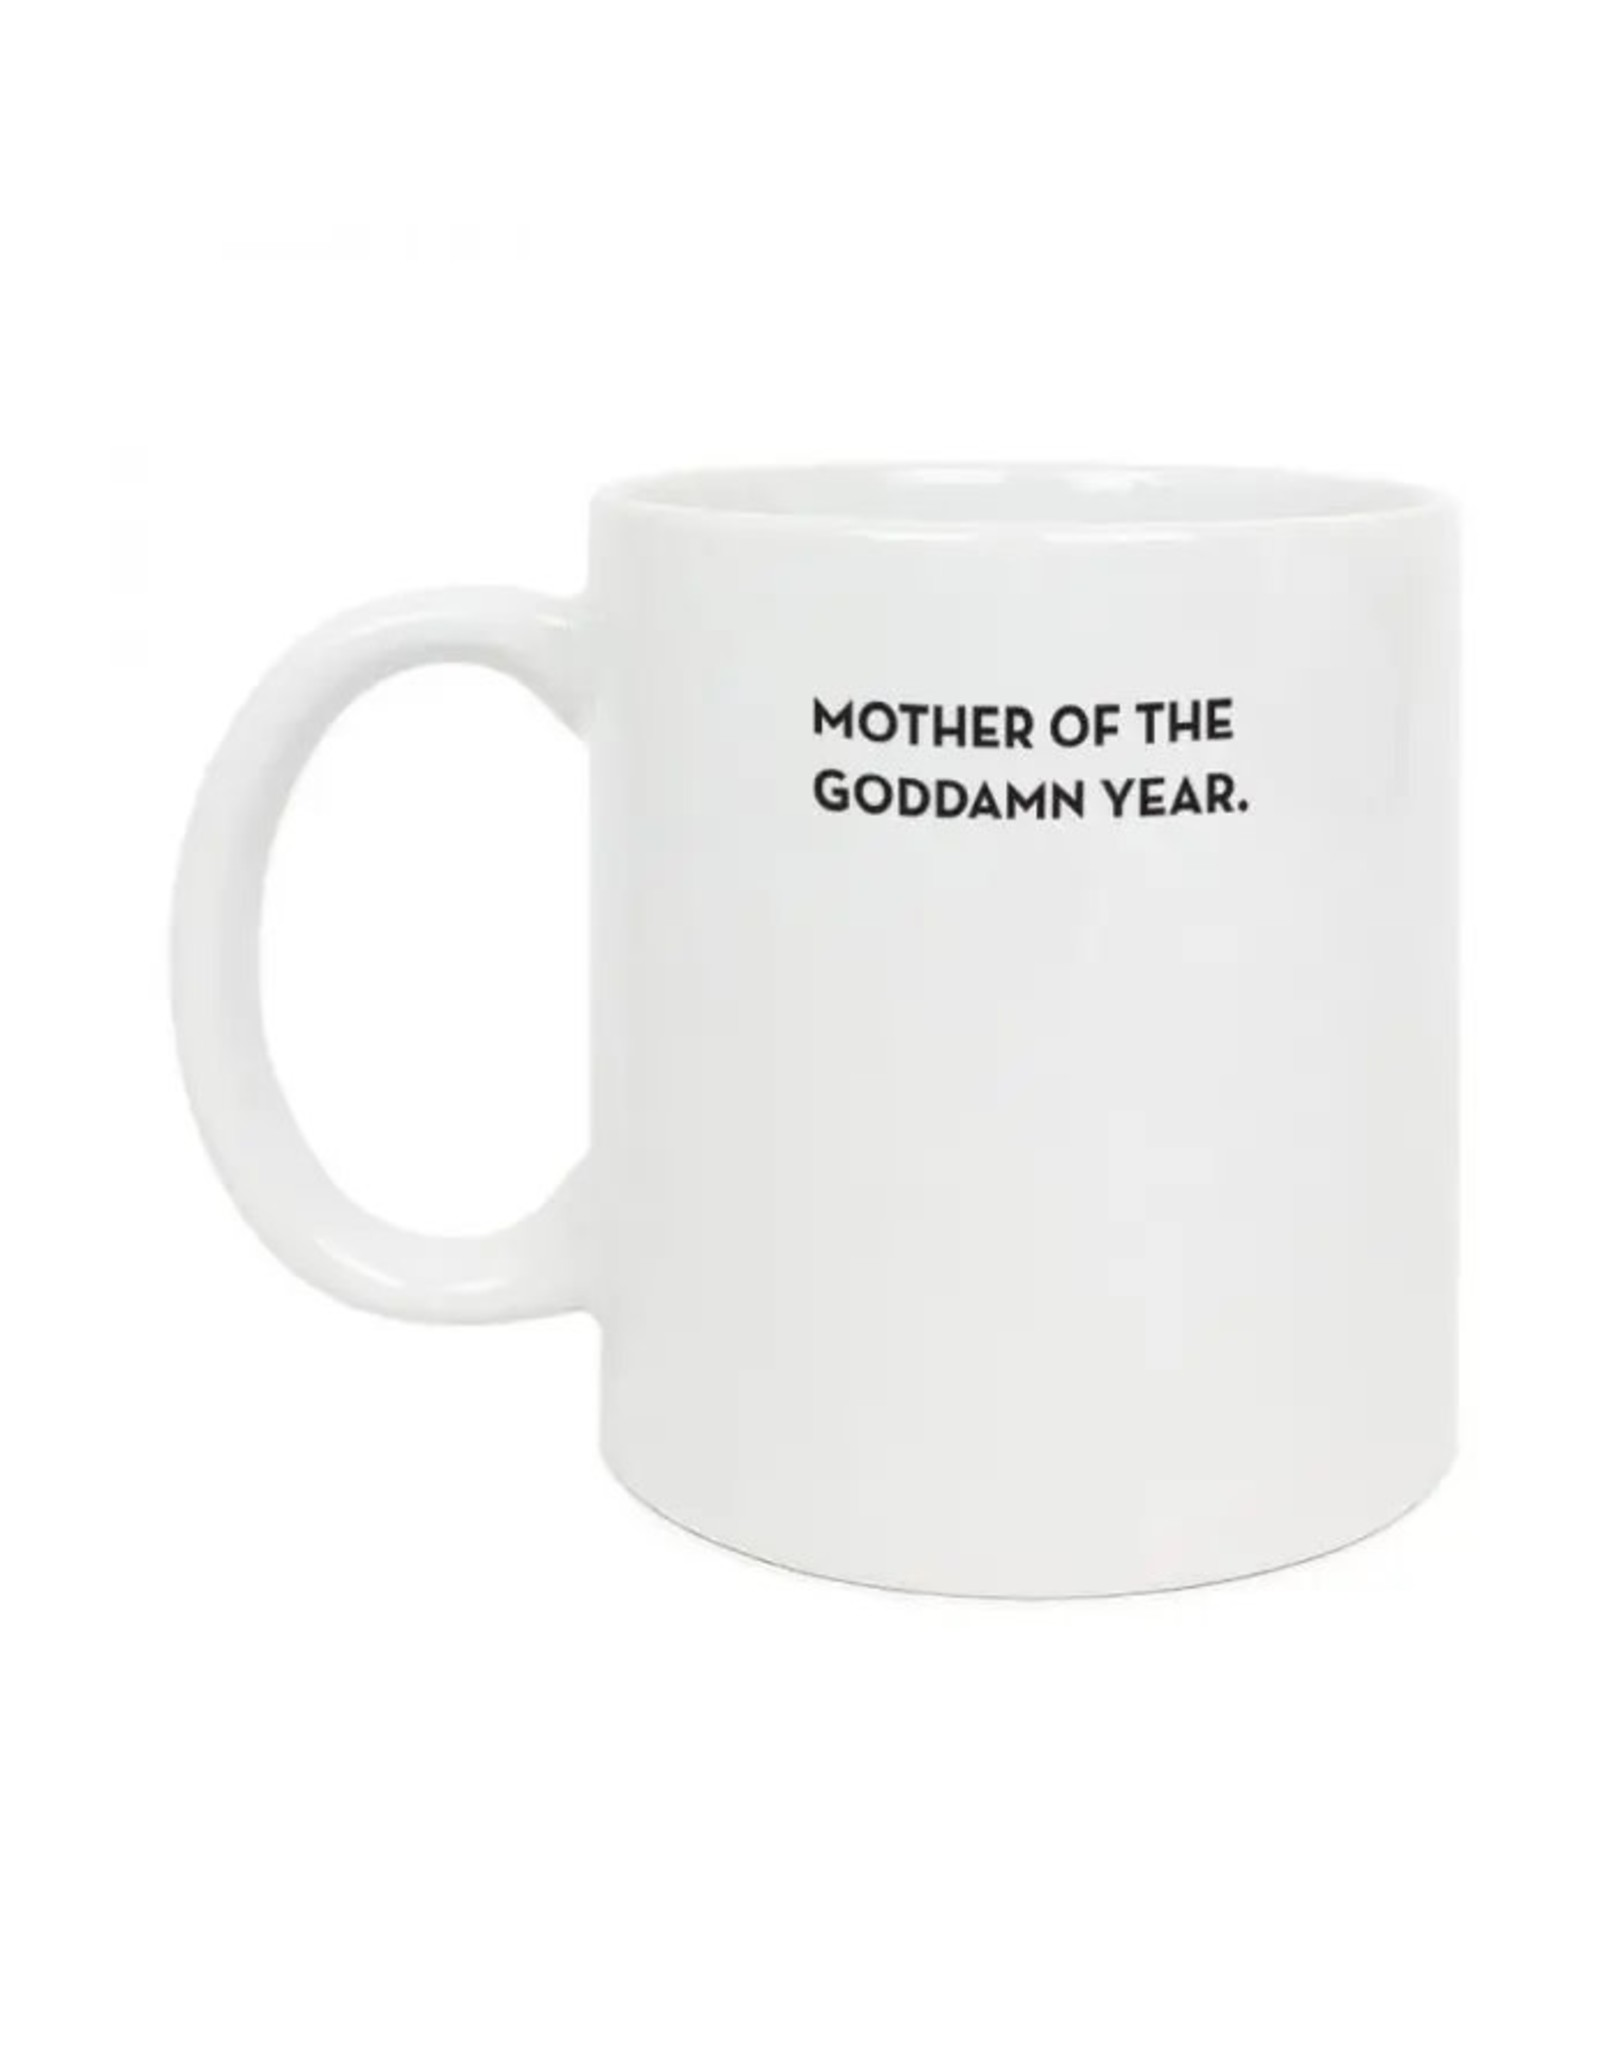 Sapling Press Mother of the Year Mug